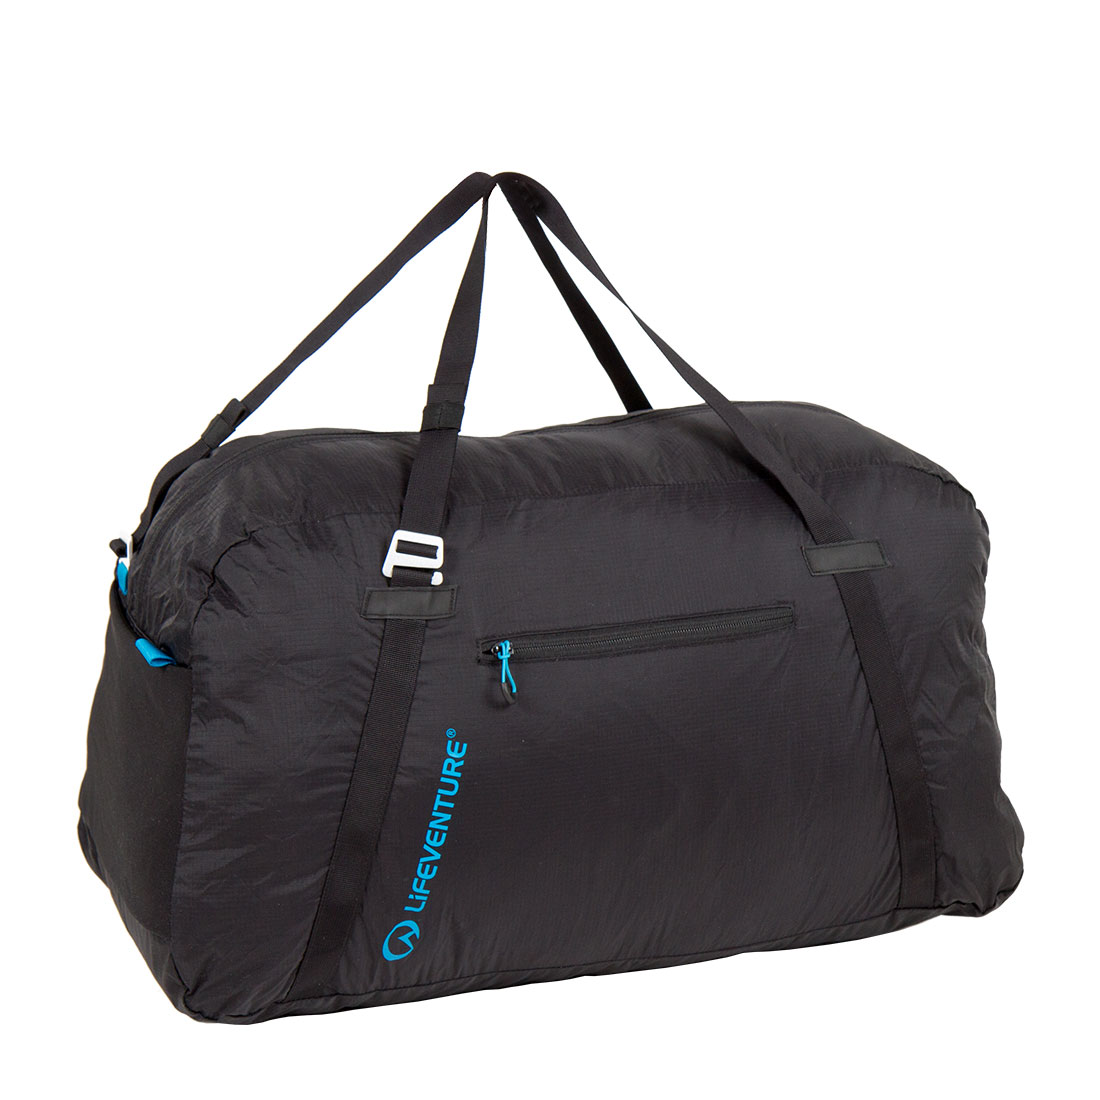 51310_packable-duffle-70l-1